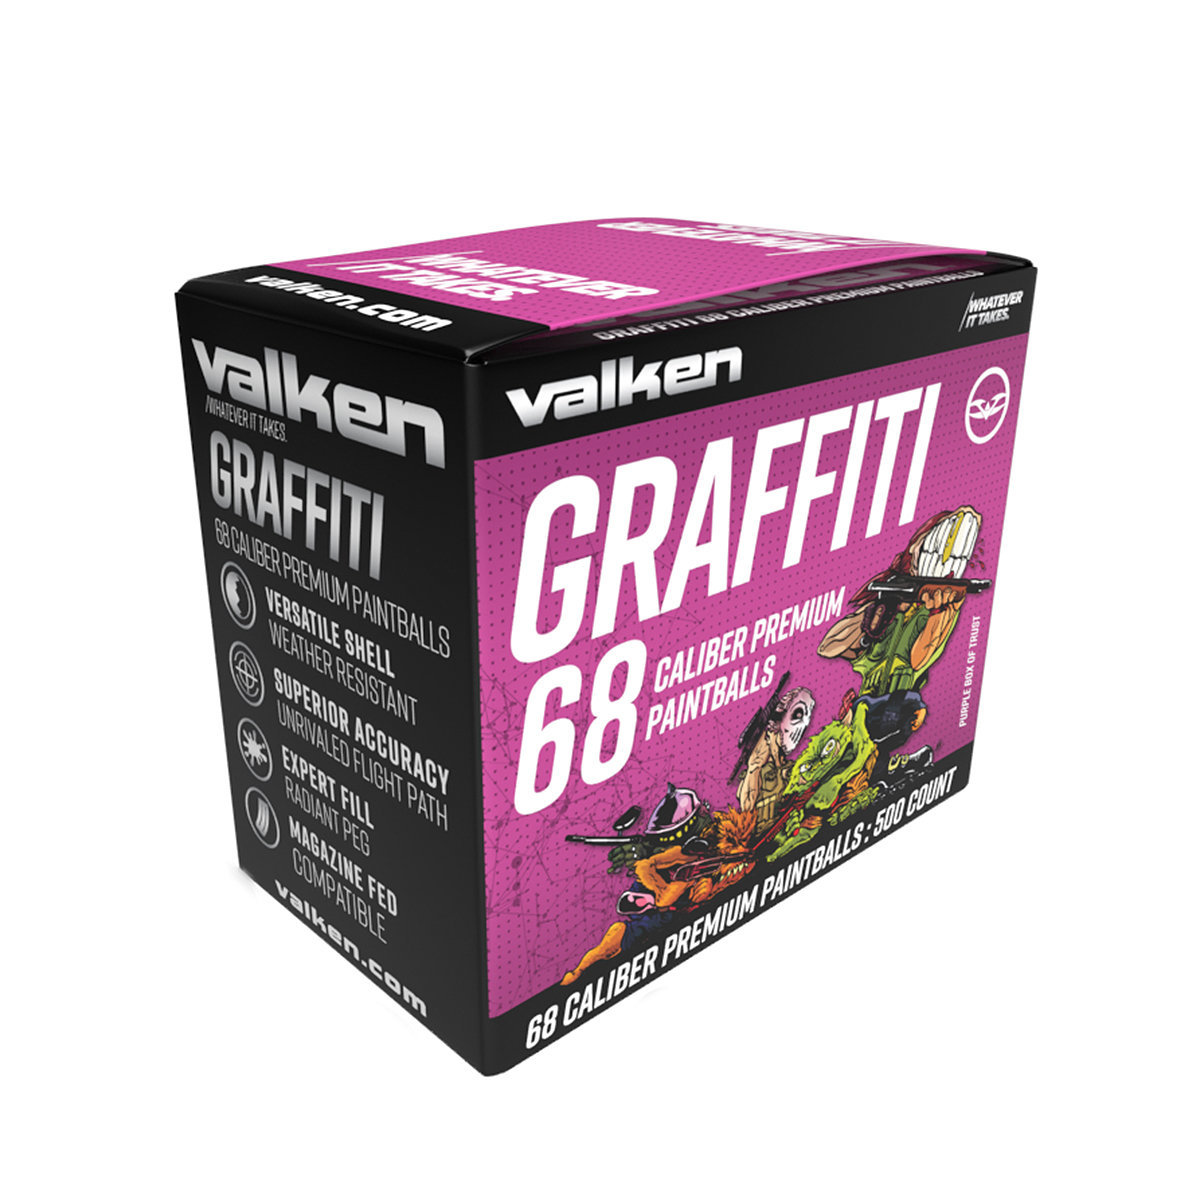 View larger image of Valken Graffiti .68 Caliber Paintballs - 500 Count